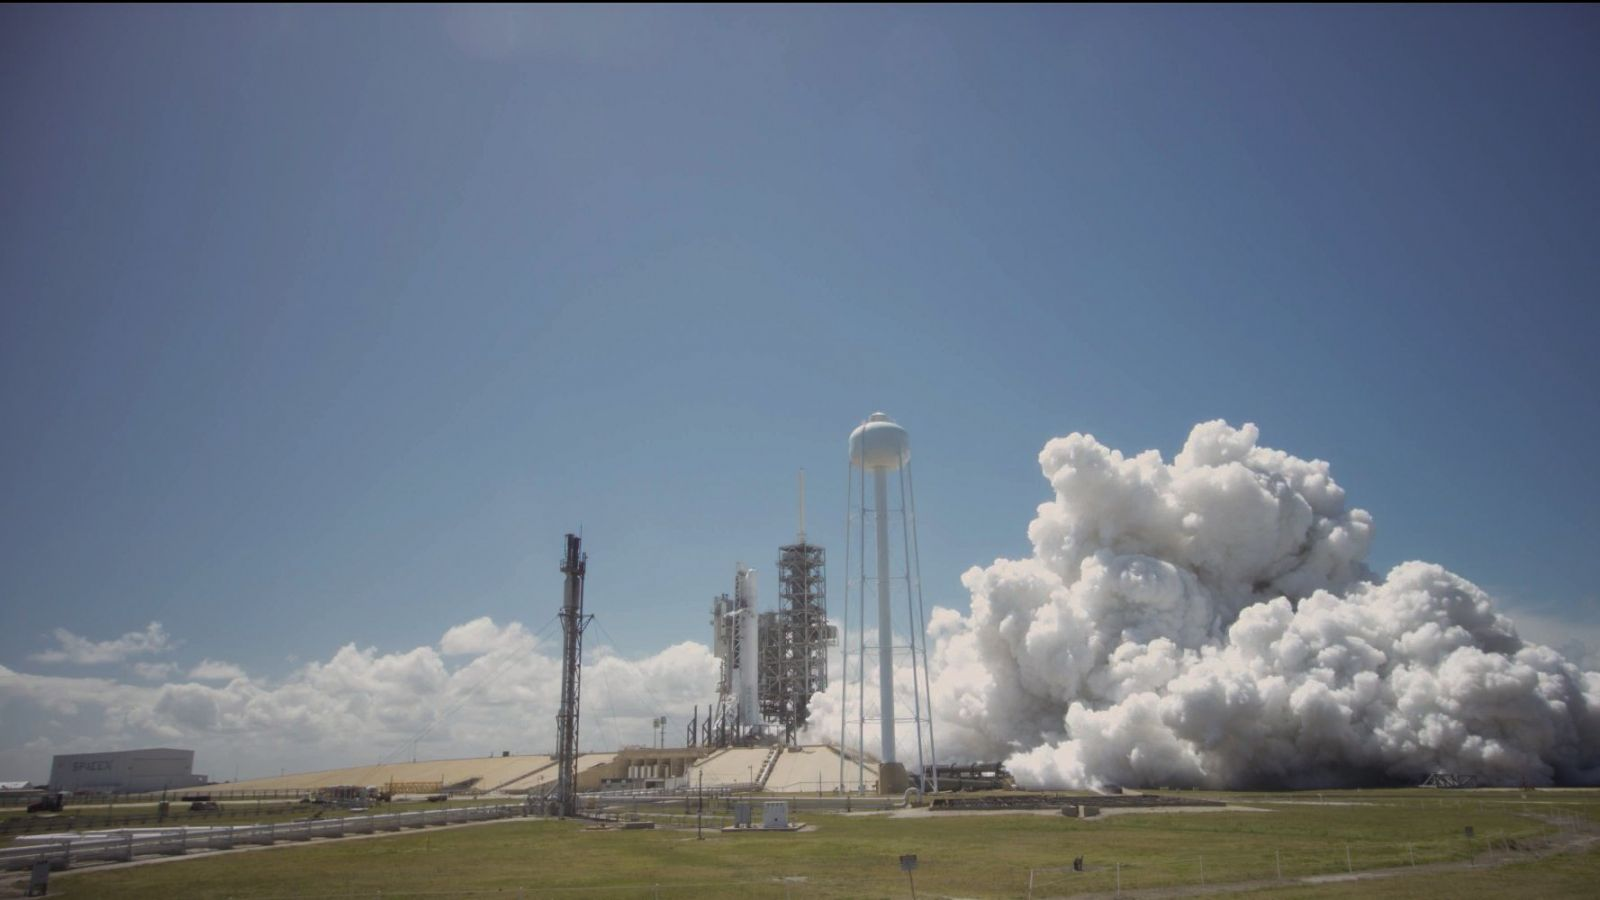 SpaceX Test Fires Falcon 9, Launch Weather 70%